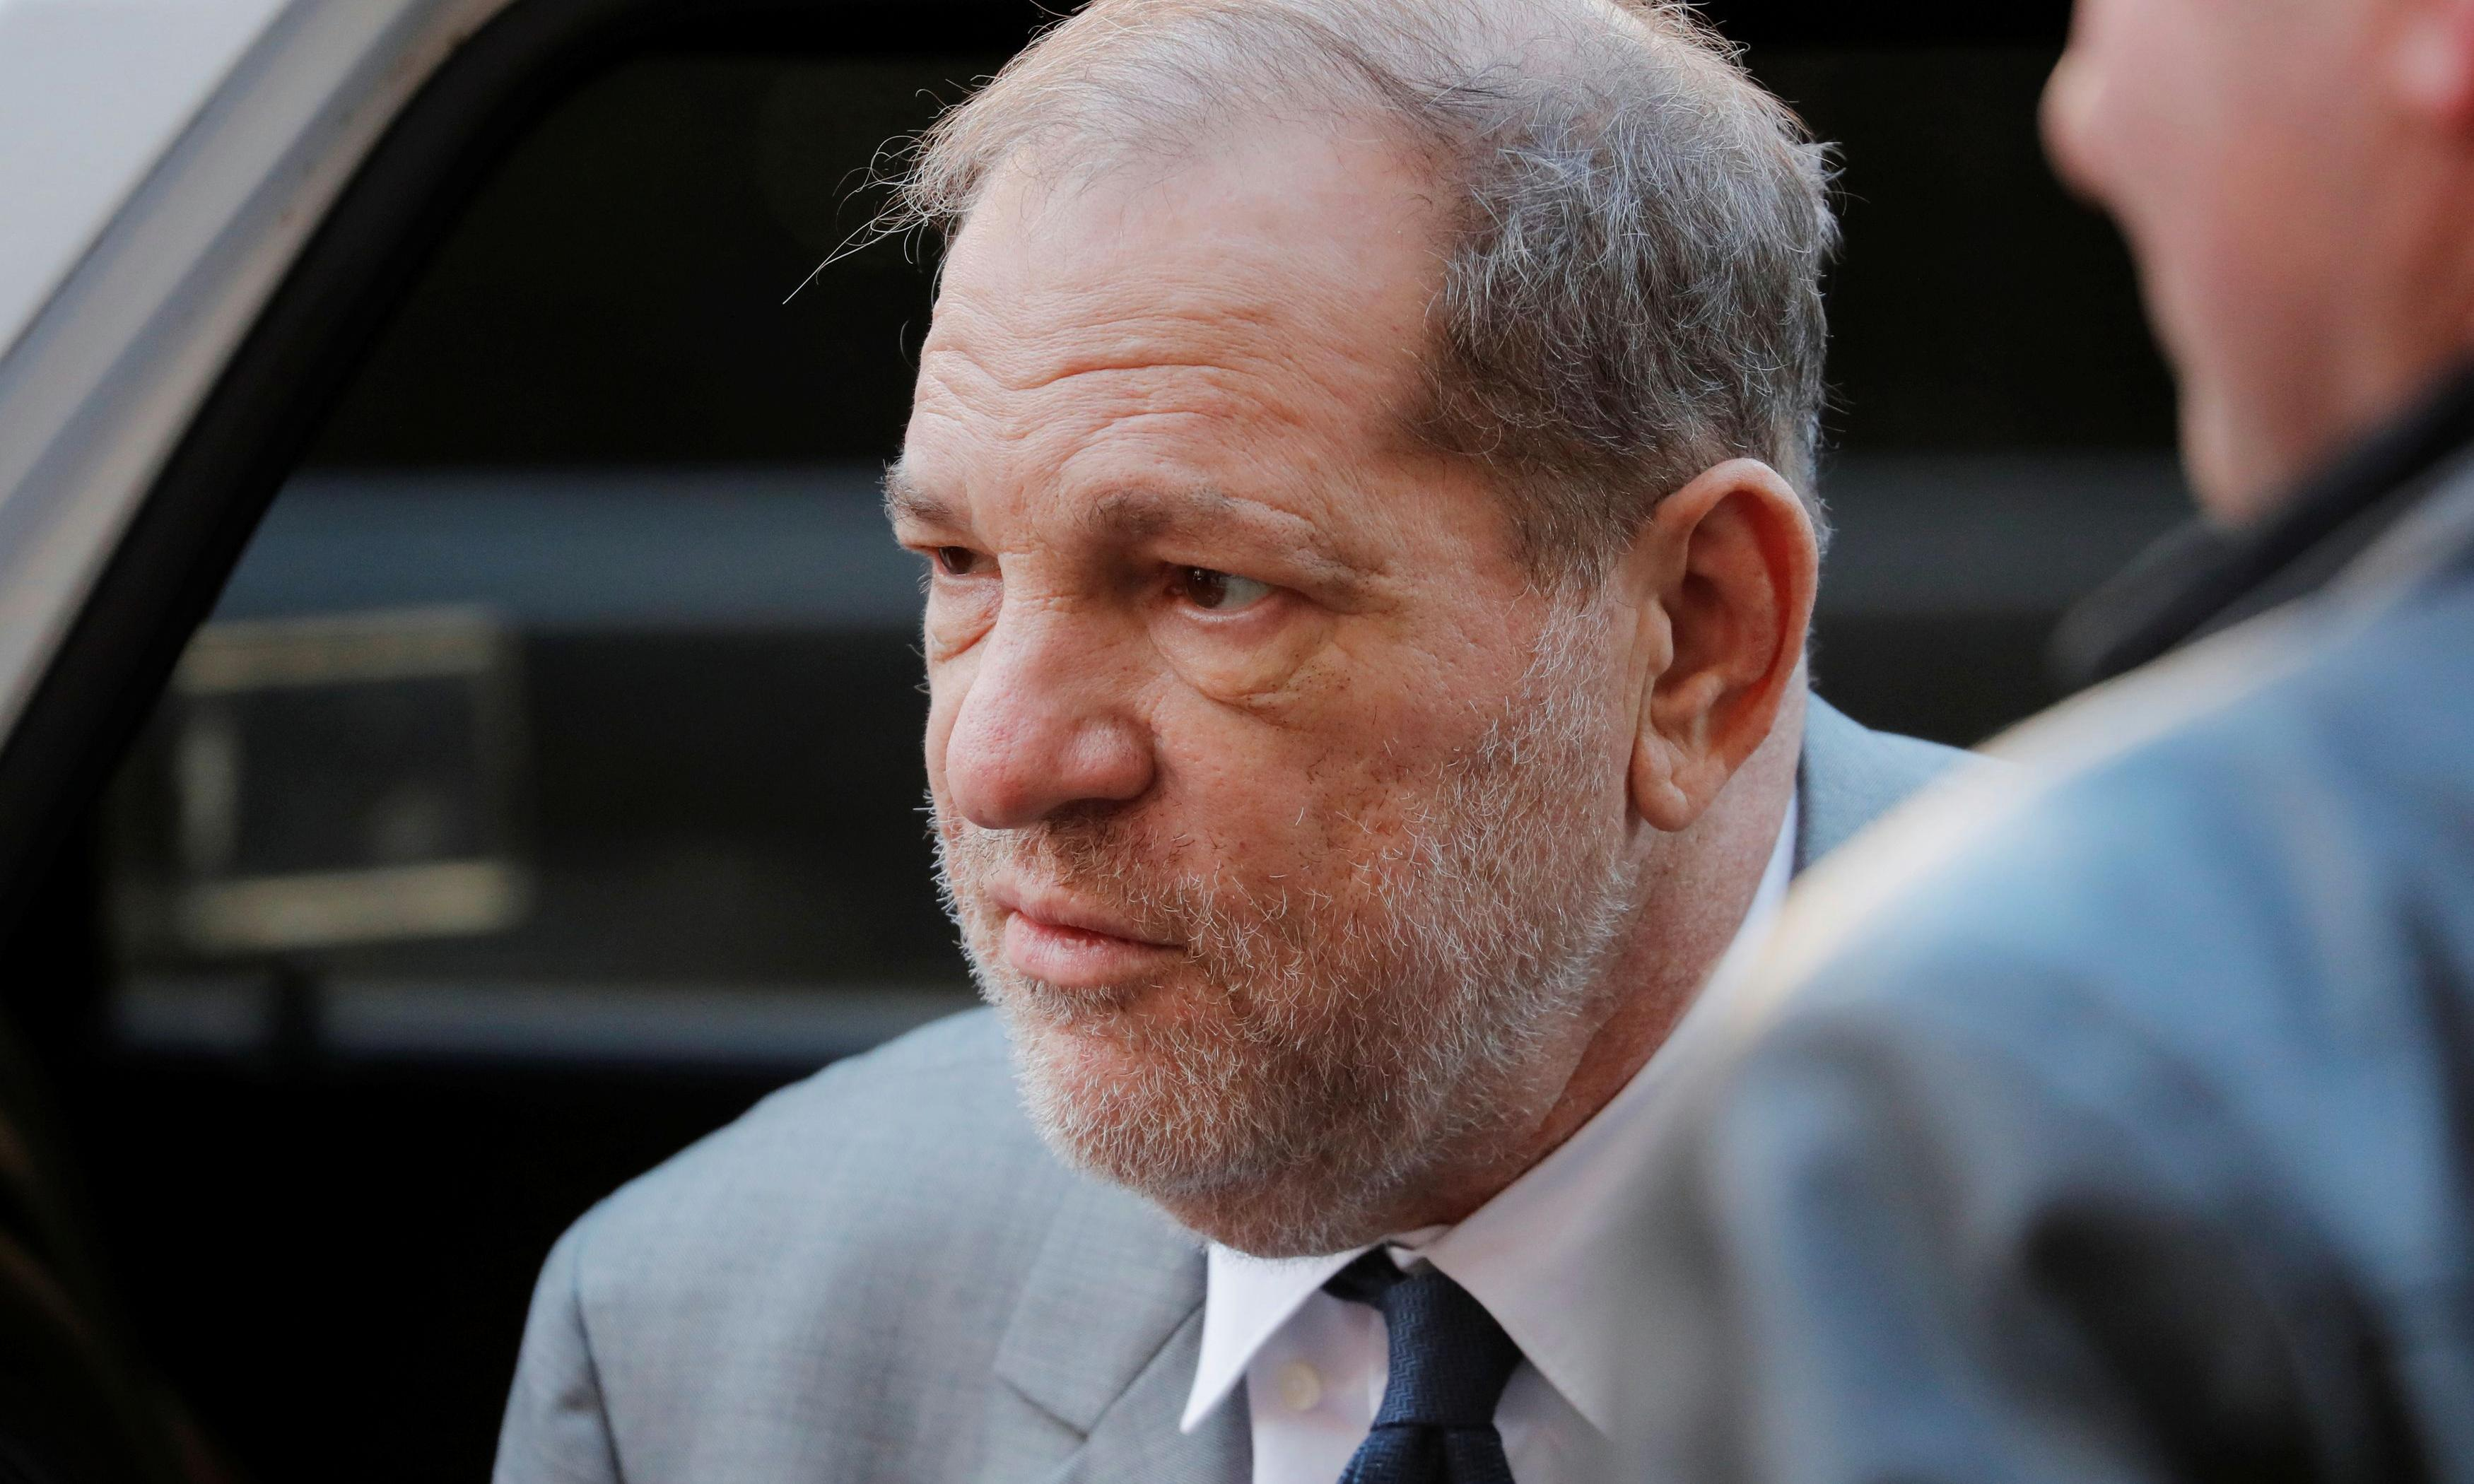 Weinstein tries to move trial out of New York City, claiming 'deluge' of bad press